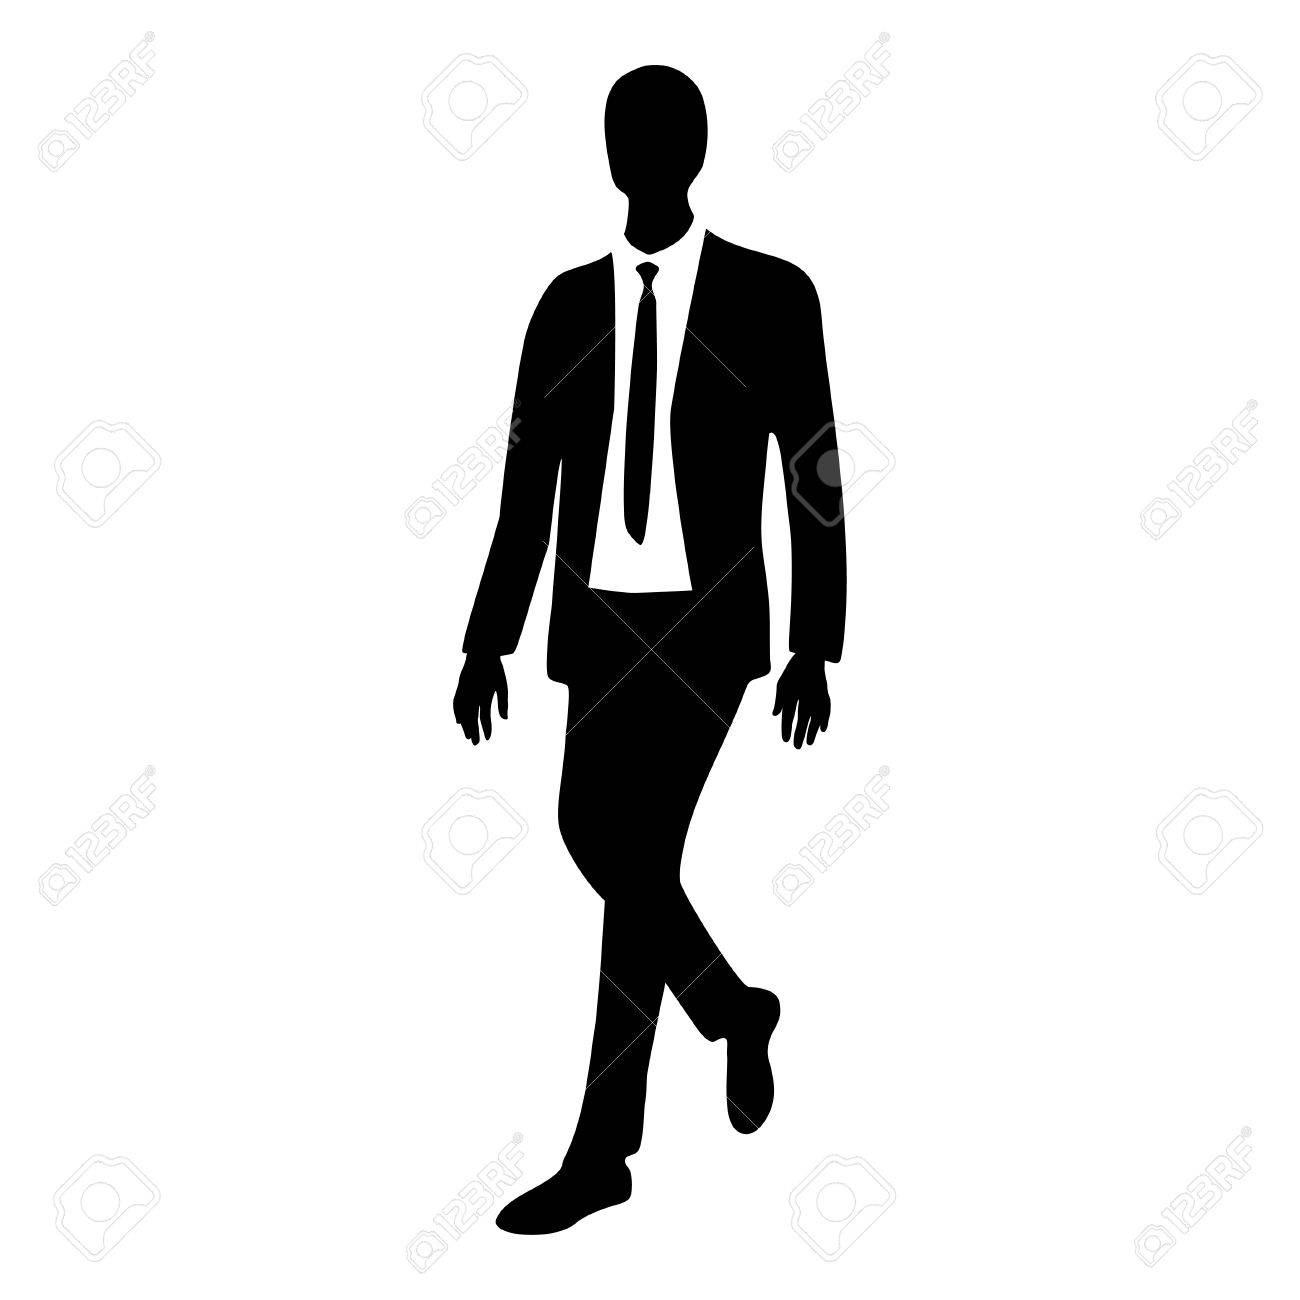 Silhouette of business man in motion illustration stock vector 55728254